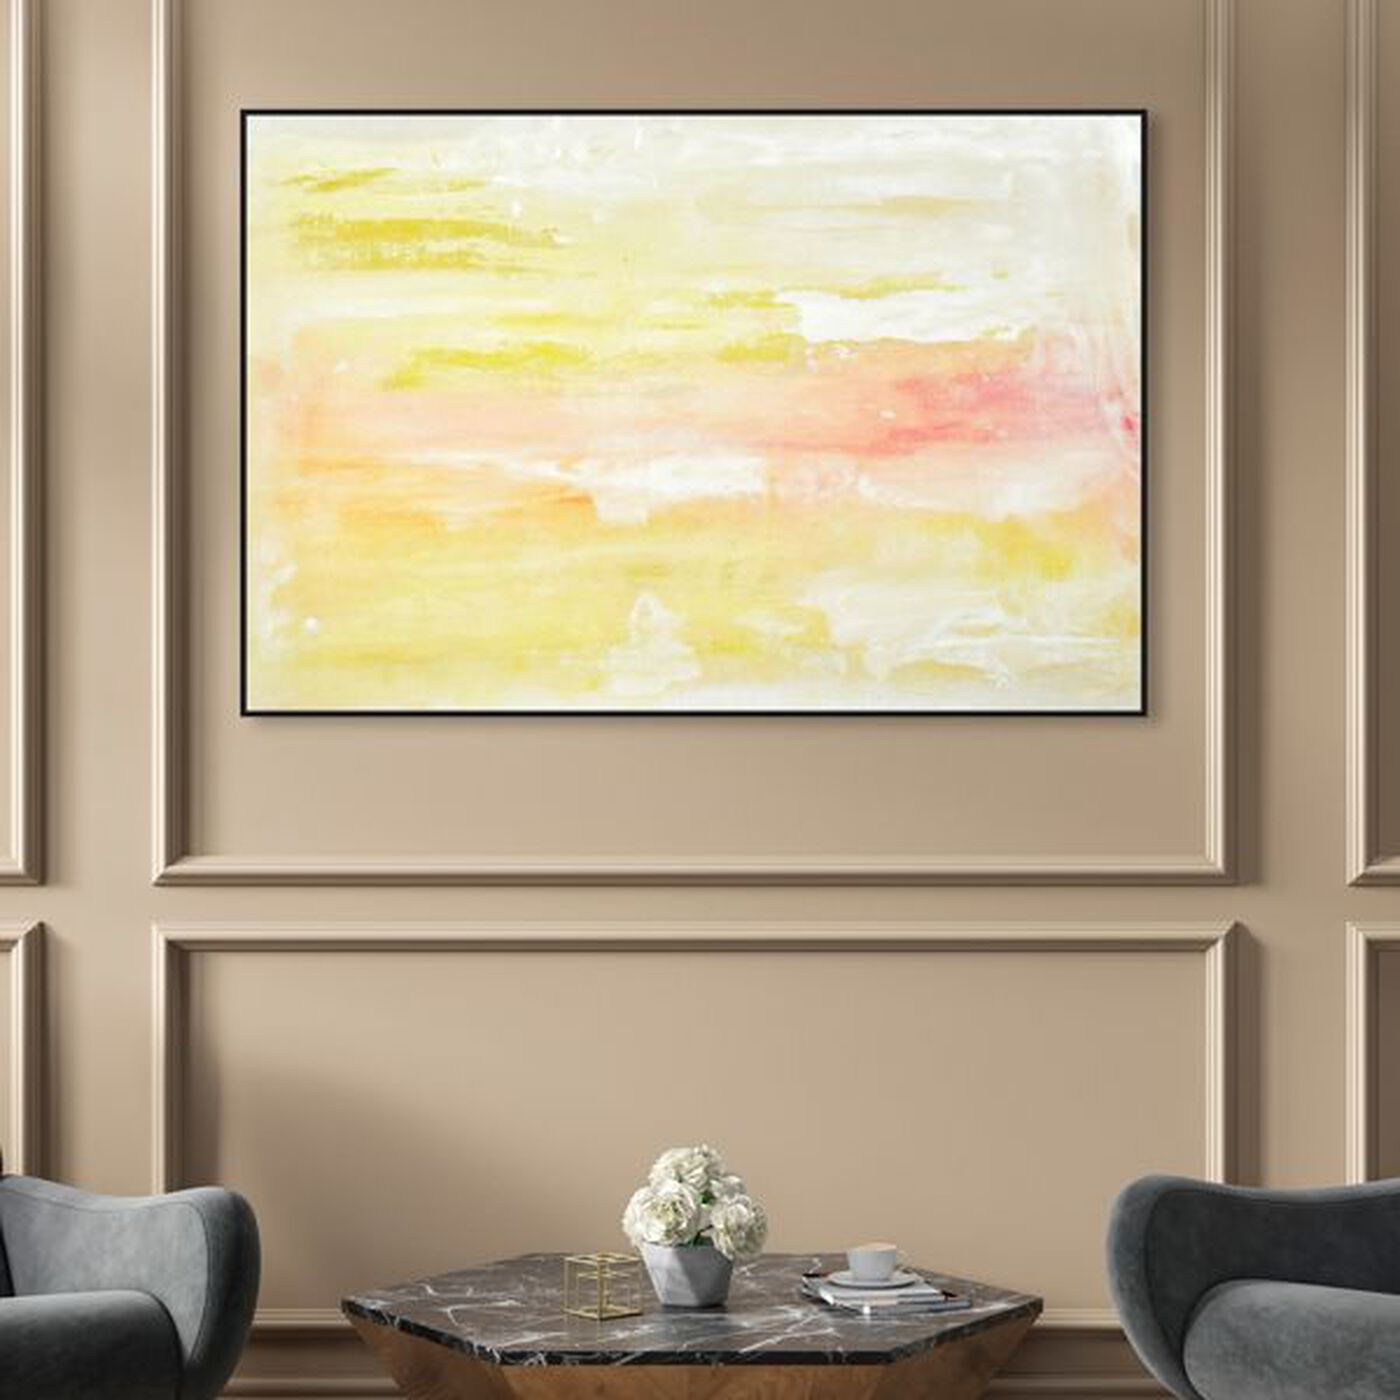 Hanging view of Peaceful Sunset featuring abstract and paint art.